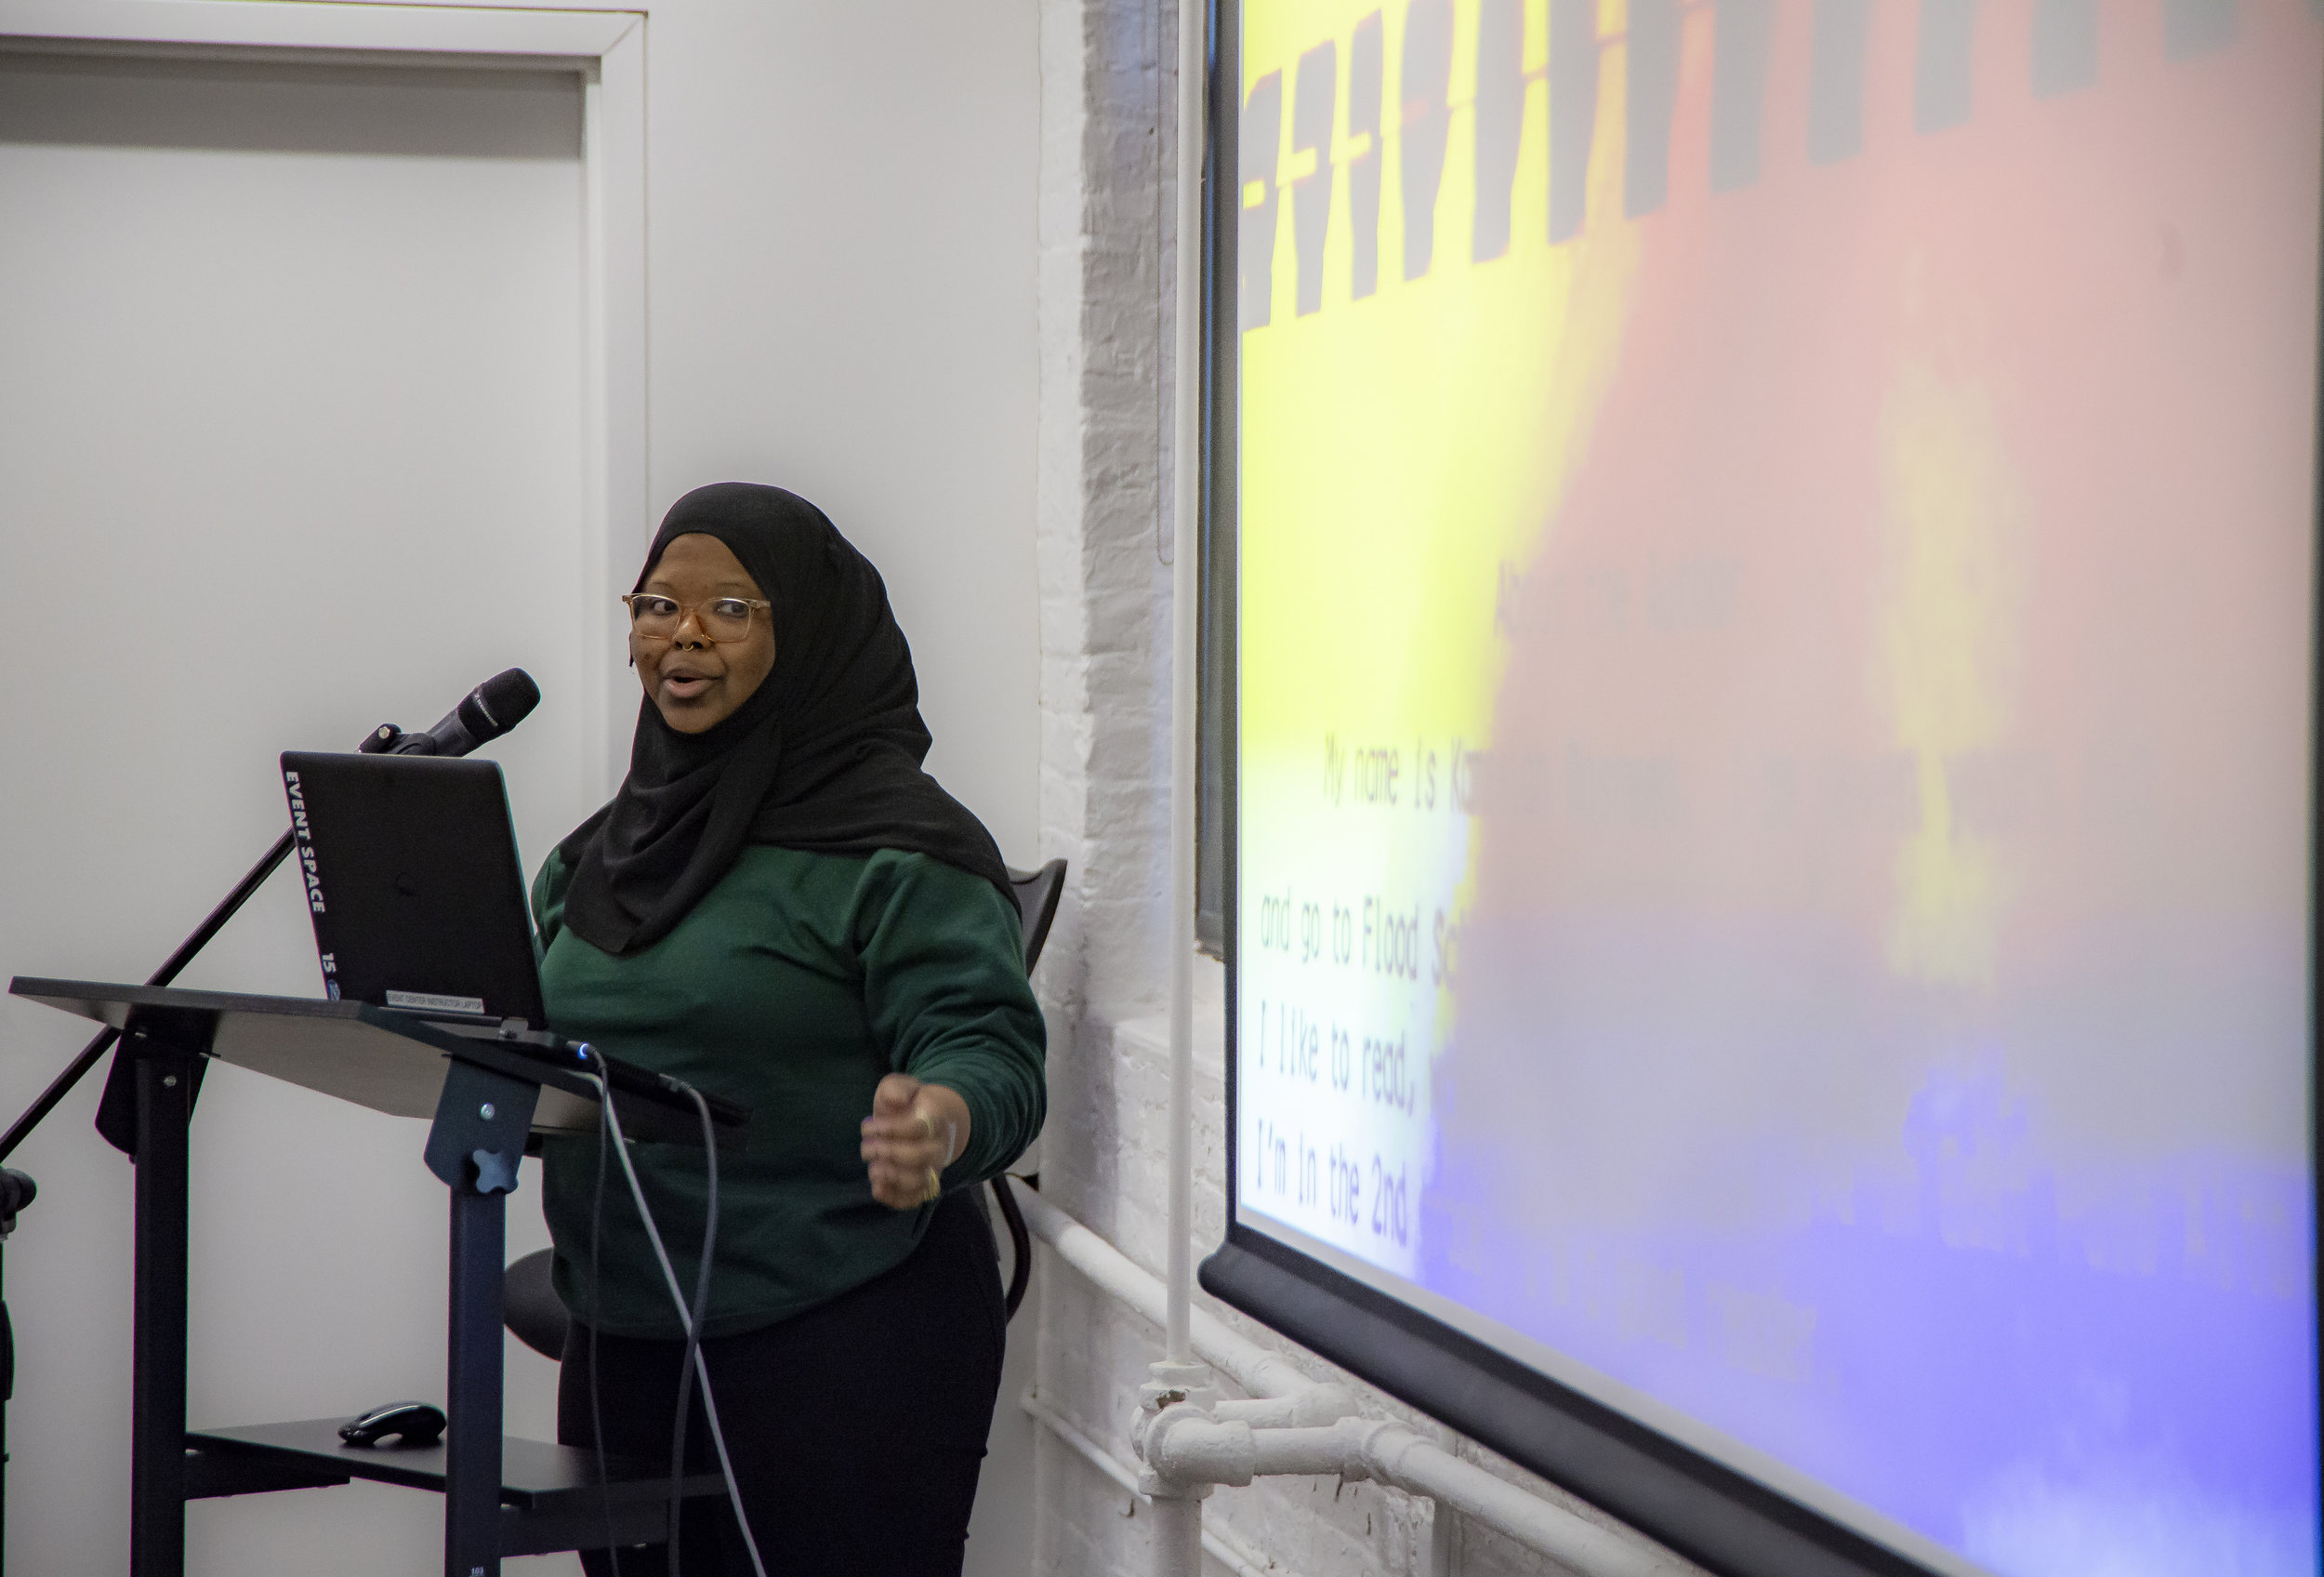 Artist Kameelah Janan Rasheed talked about her artistic work with the libraries. Photo: Aidan Smith.